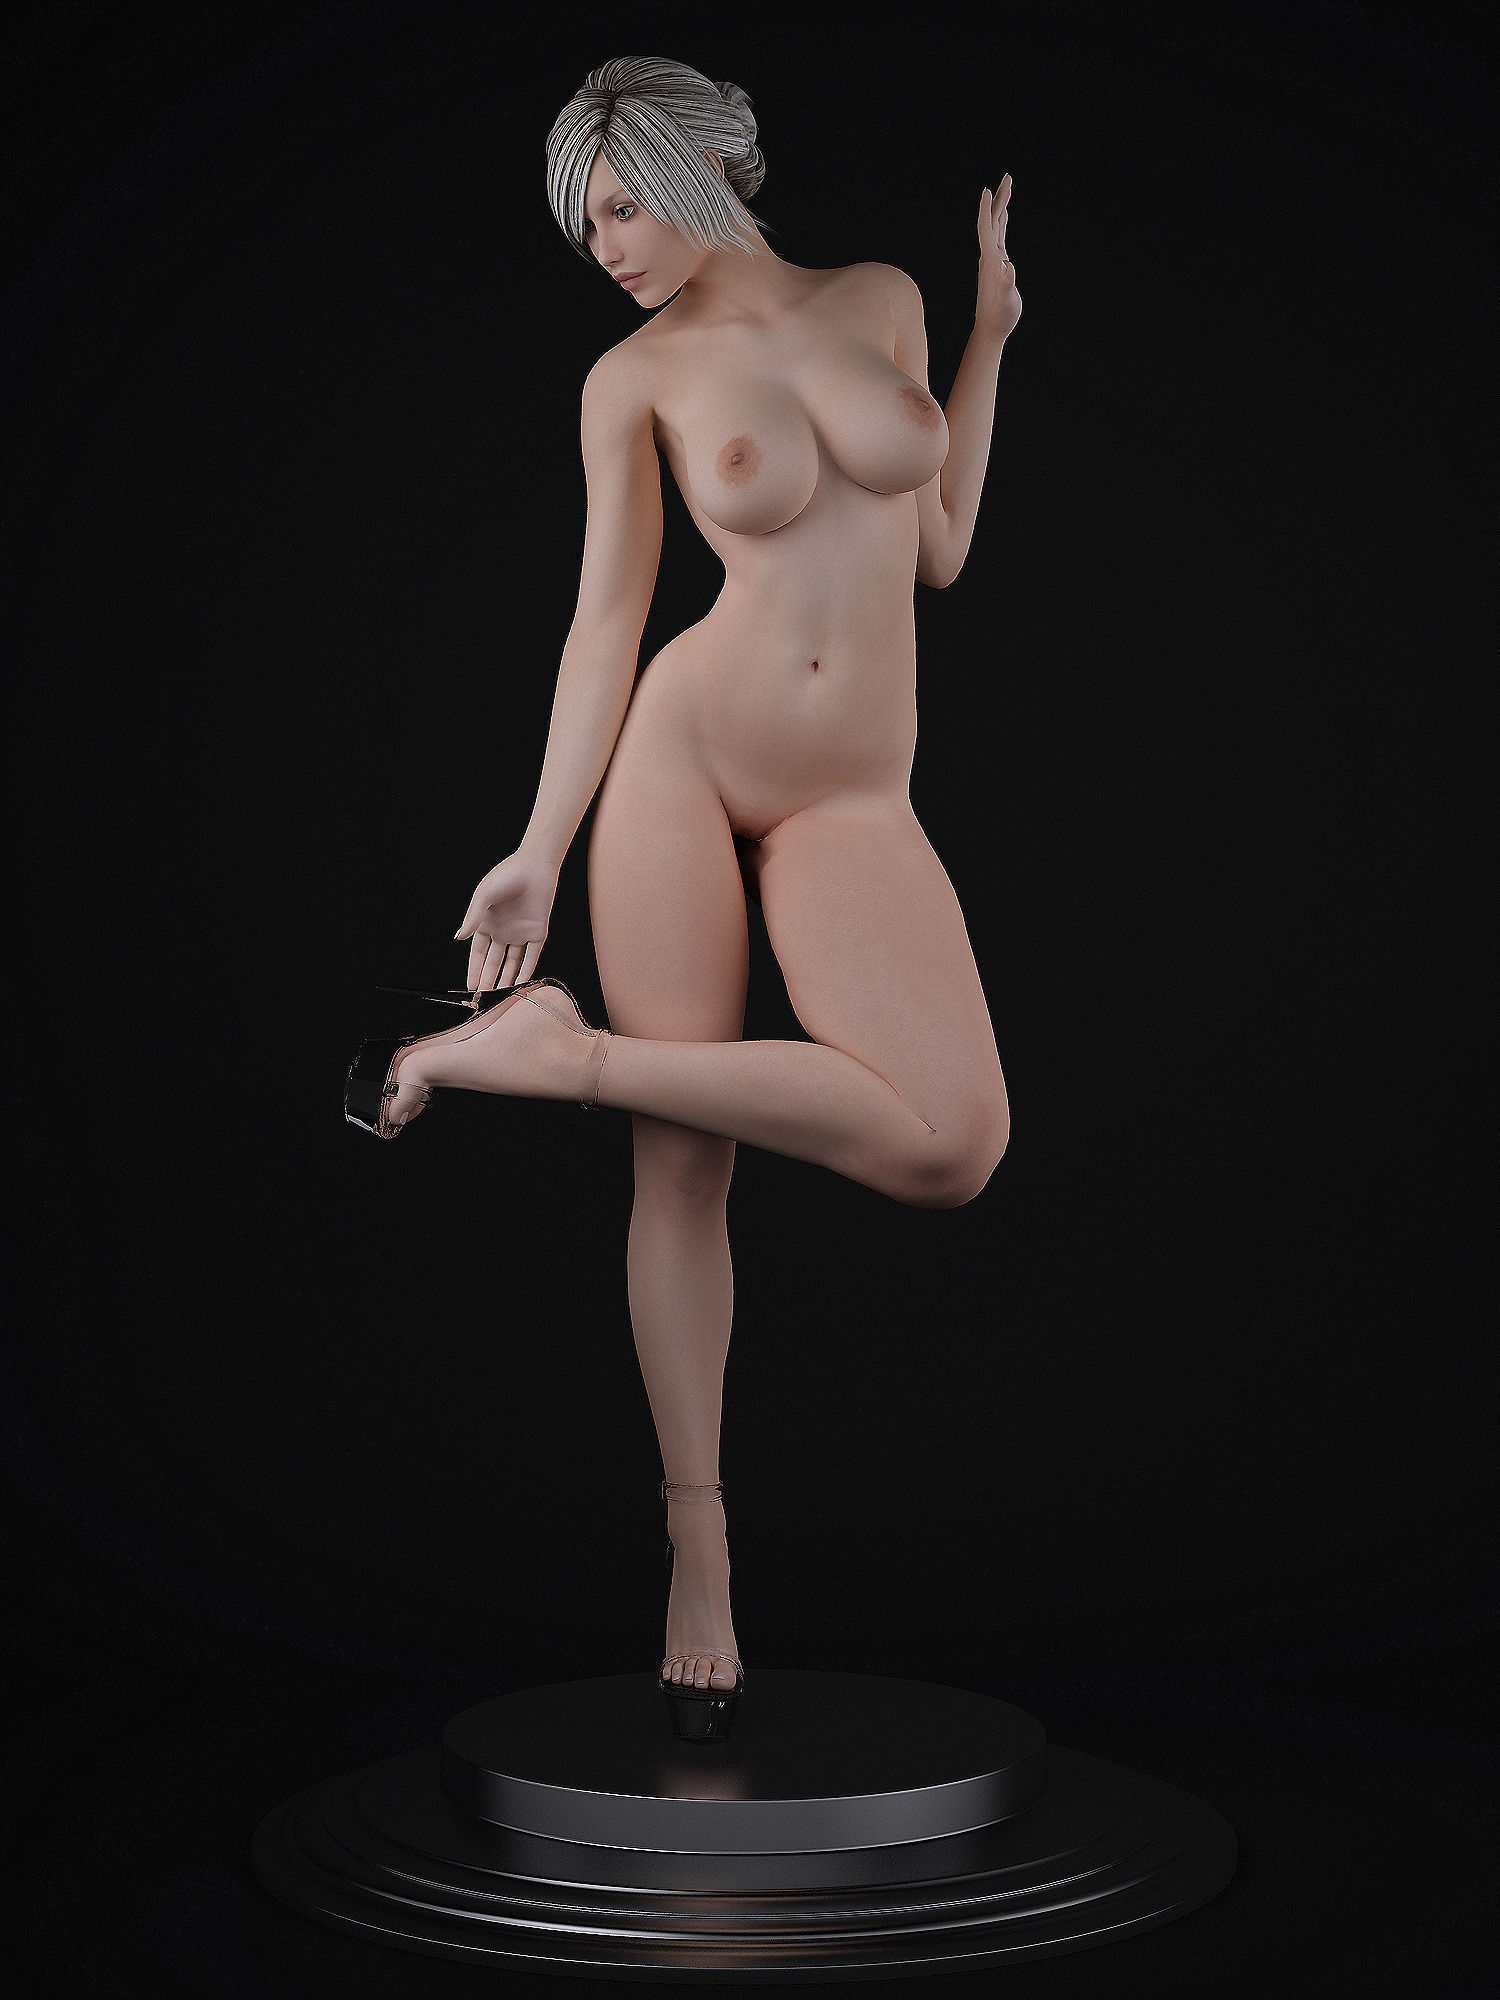 Nude 3 d female art porncraft pic